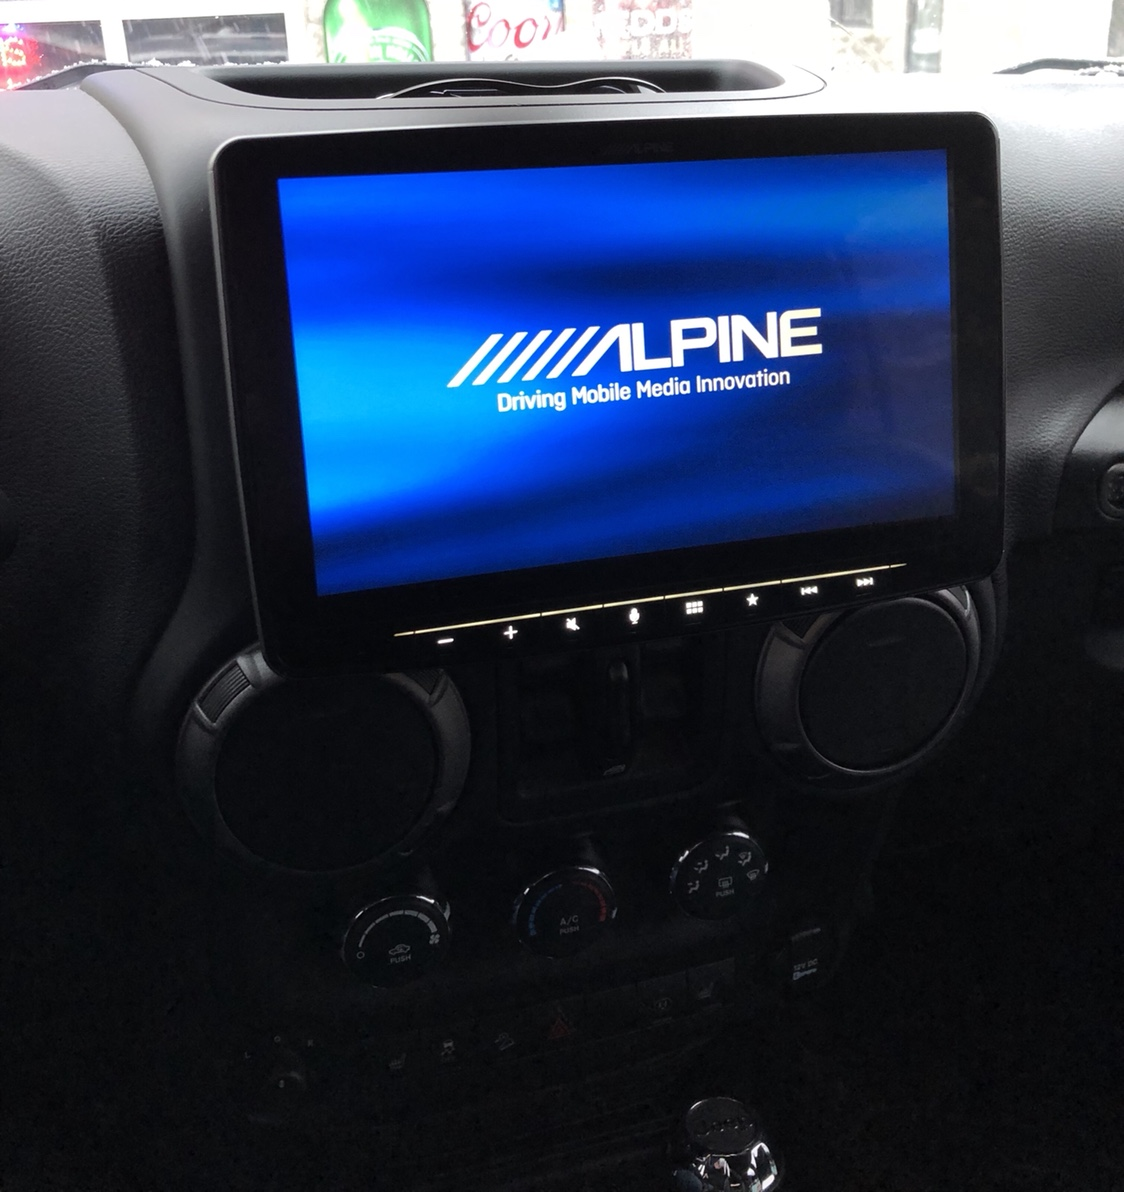 Alpine Halo9 Ilx F309 Install Then Review Jeep Wrangler Forum 89 Cherokee Wiring Harness This Image Has Been Resized Click Bar To View The Full